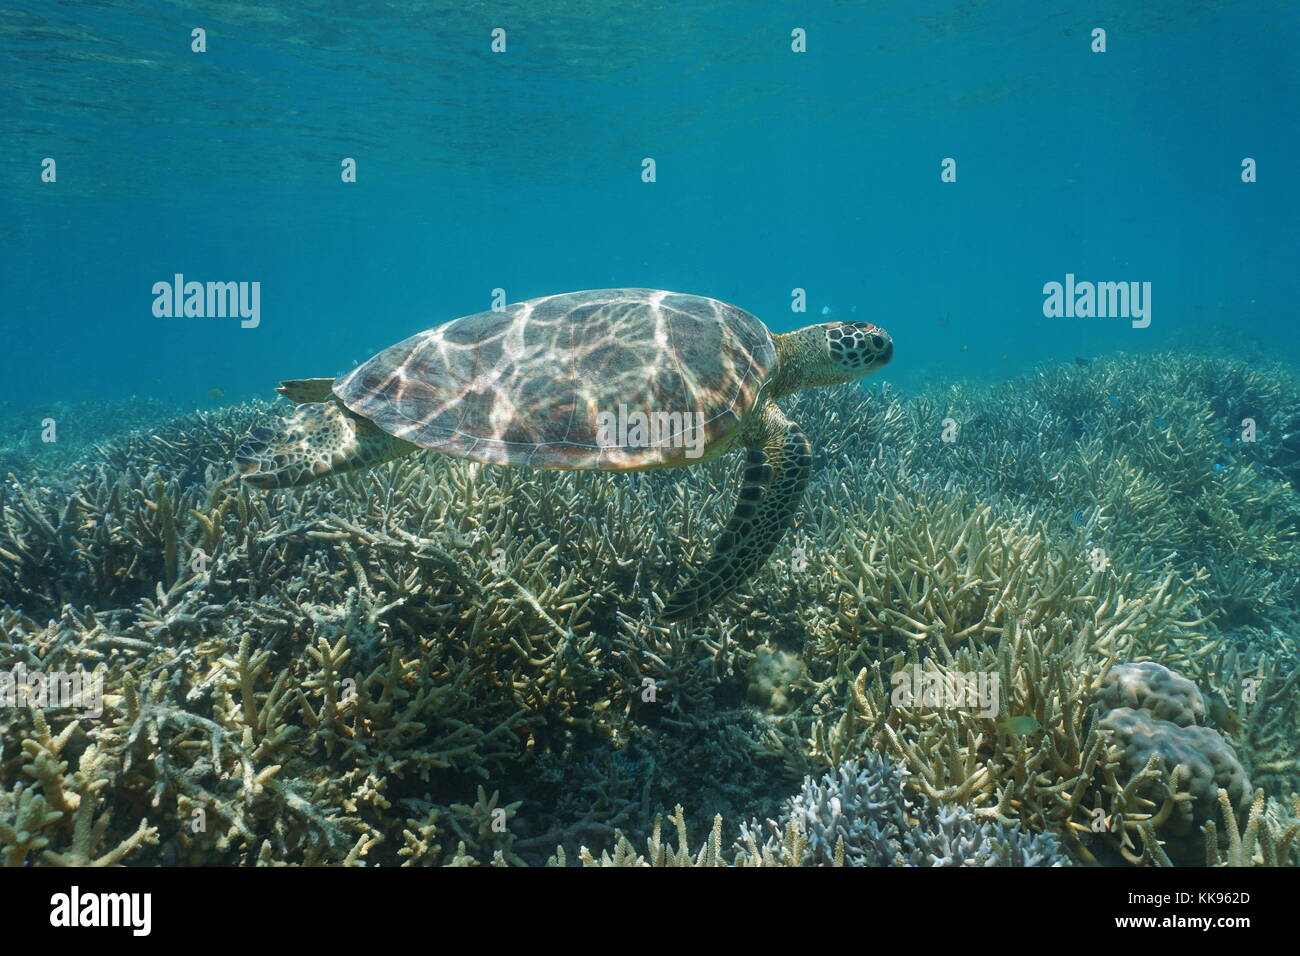 Underwater a green sea turtle Chelonia mydas, swims over a coral reef, New Caledonia, south Pacific ocean, Oceania - Stock Image